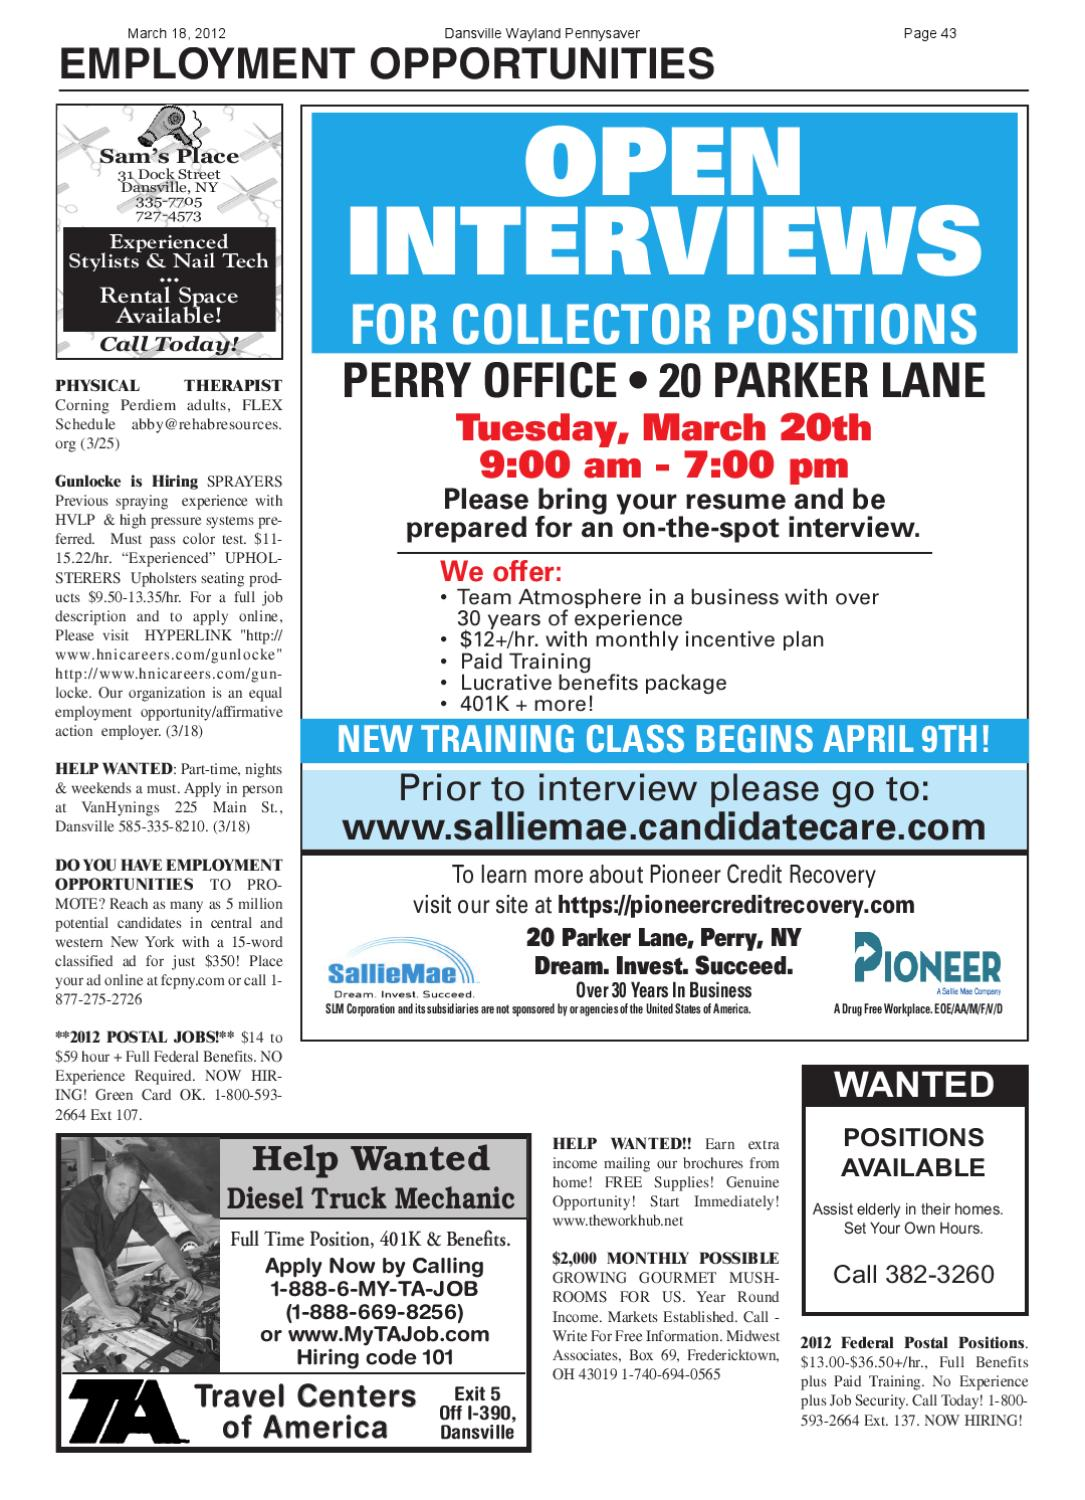 March 18, 2012 by Dansville-Wayland PennySaver - issuu